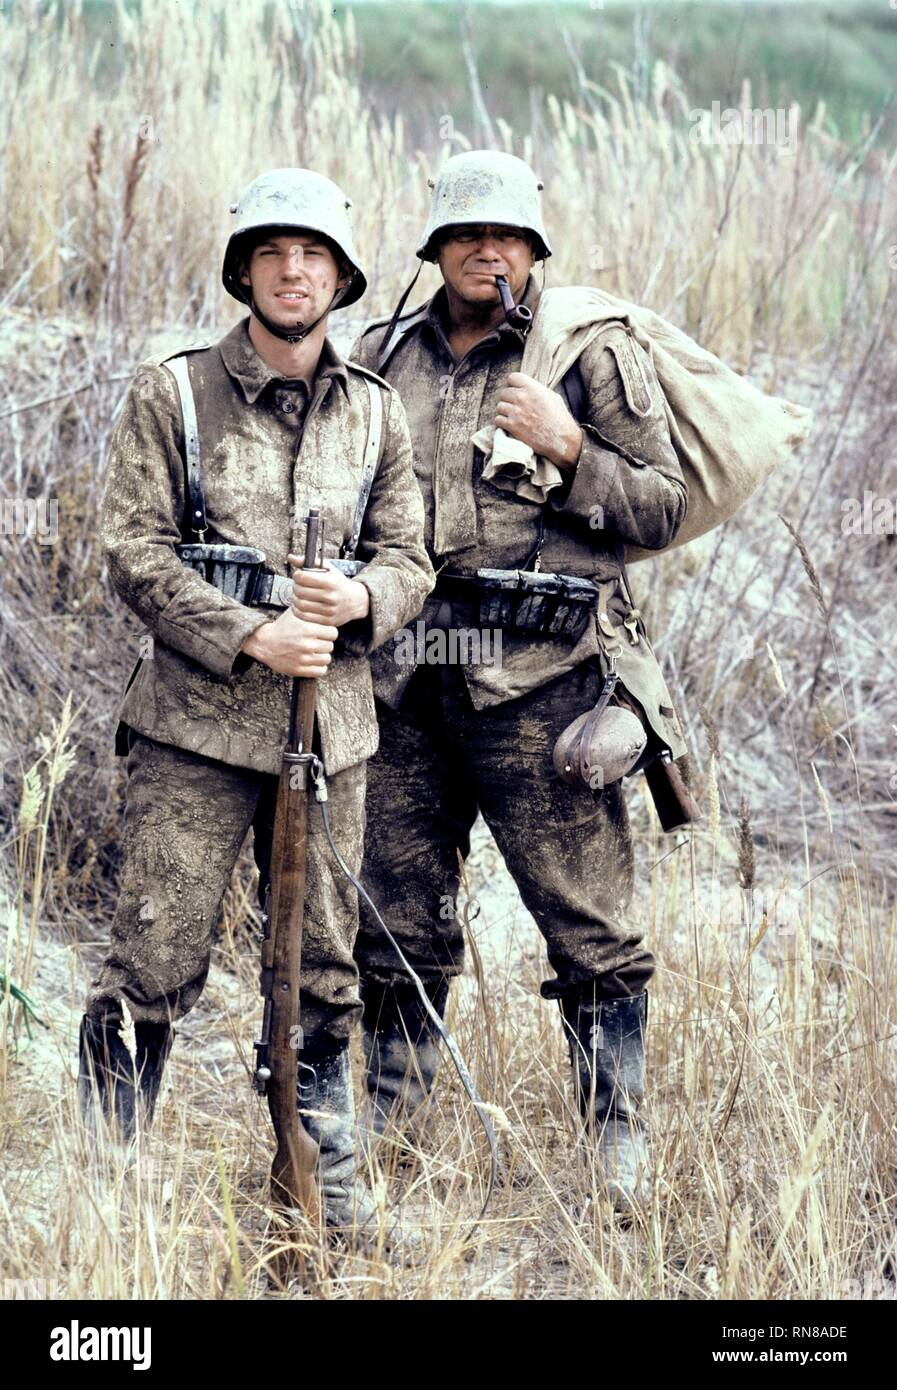 THOMAS,BORGNINE, ALL QUIET ON THE WESTERN FRONT, 1979 - Stock Image